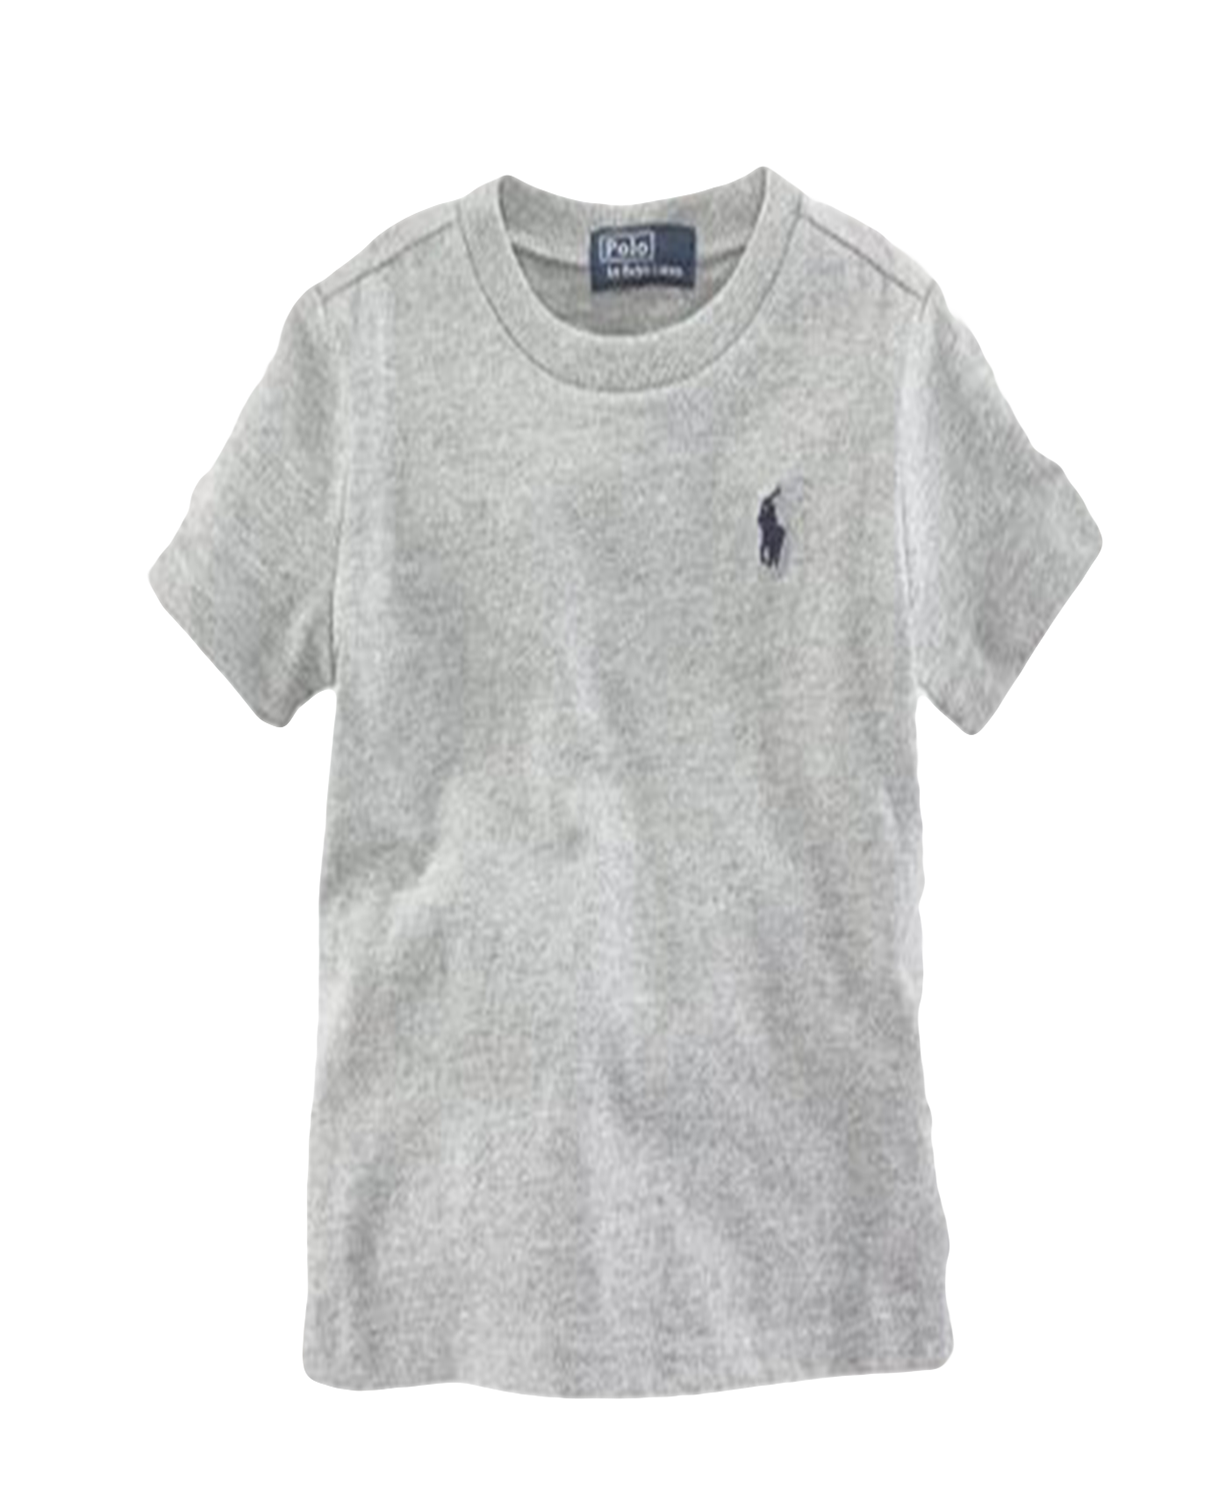 ralph lauren buy ralph lauren polo t shirts